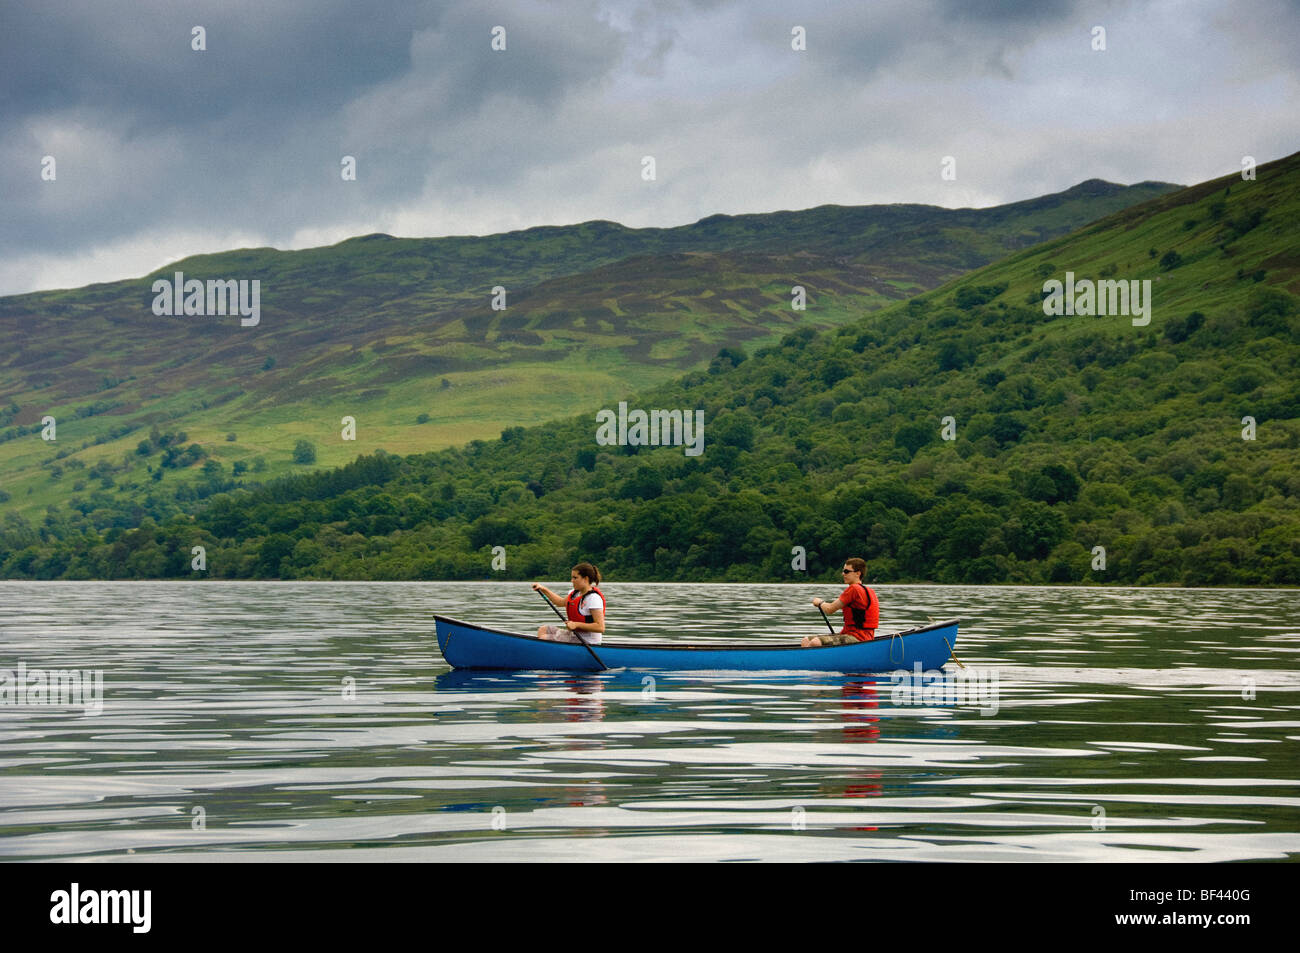 Canadian Canoe Stock Photos Amp Canadian Canoe Stock Images